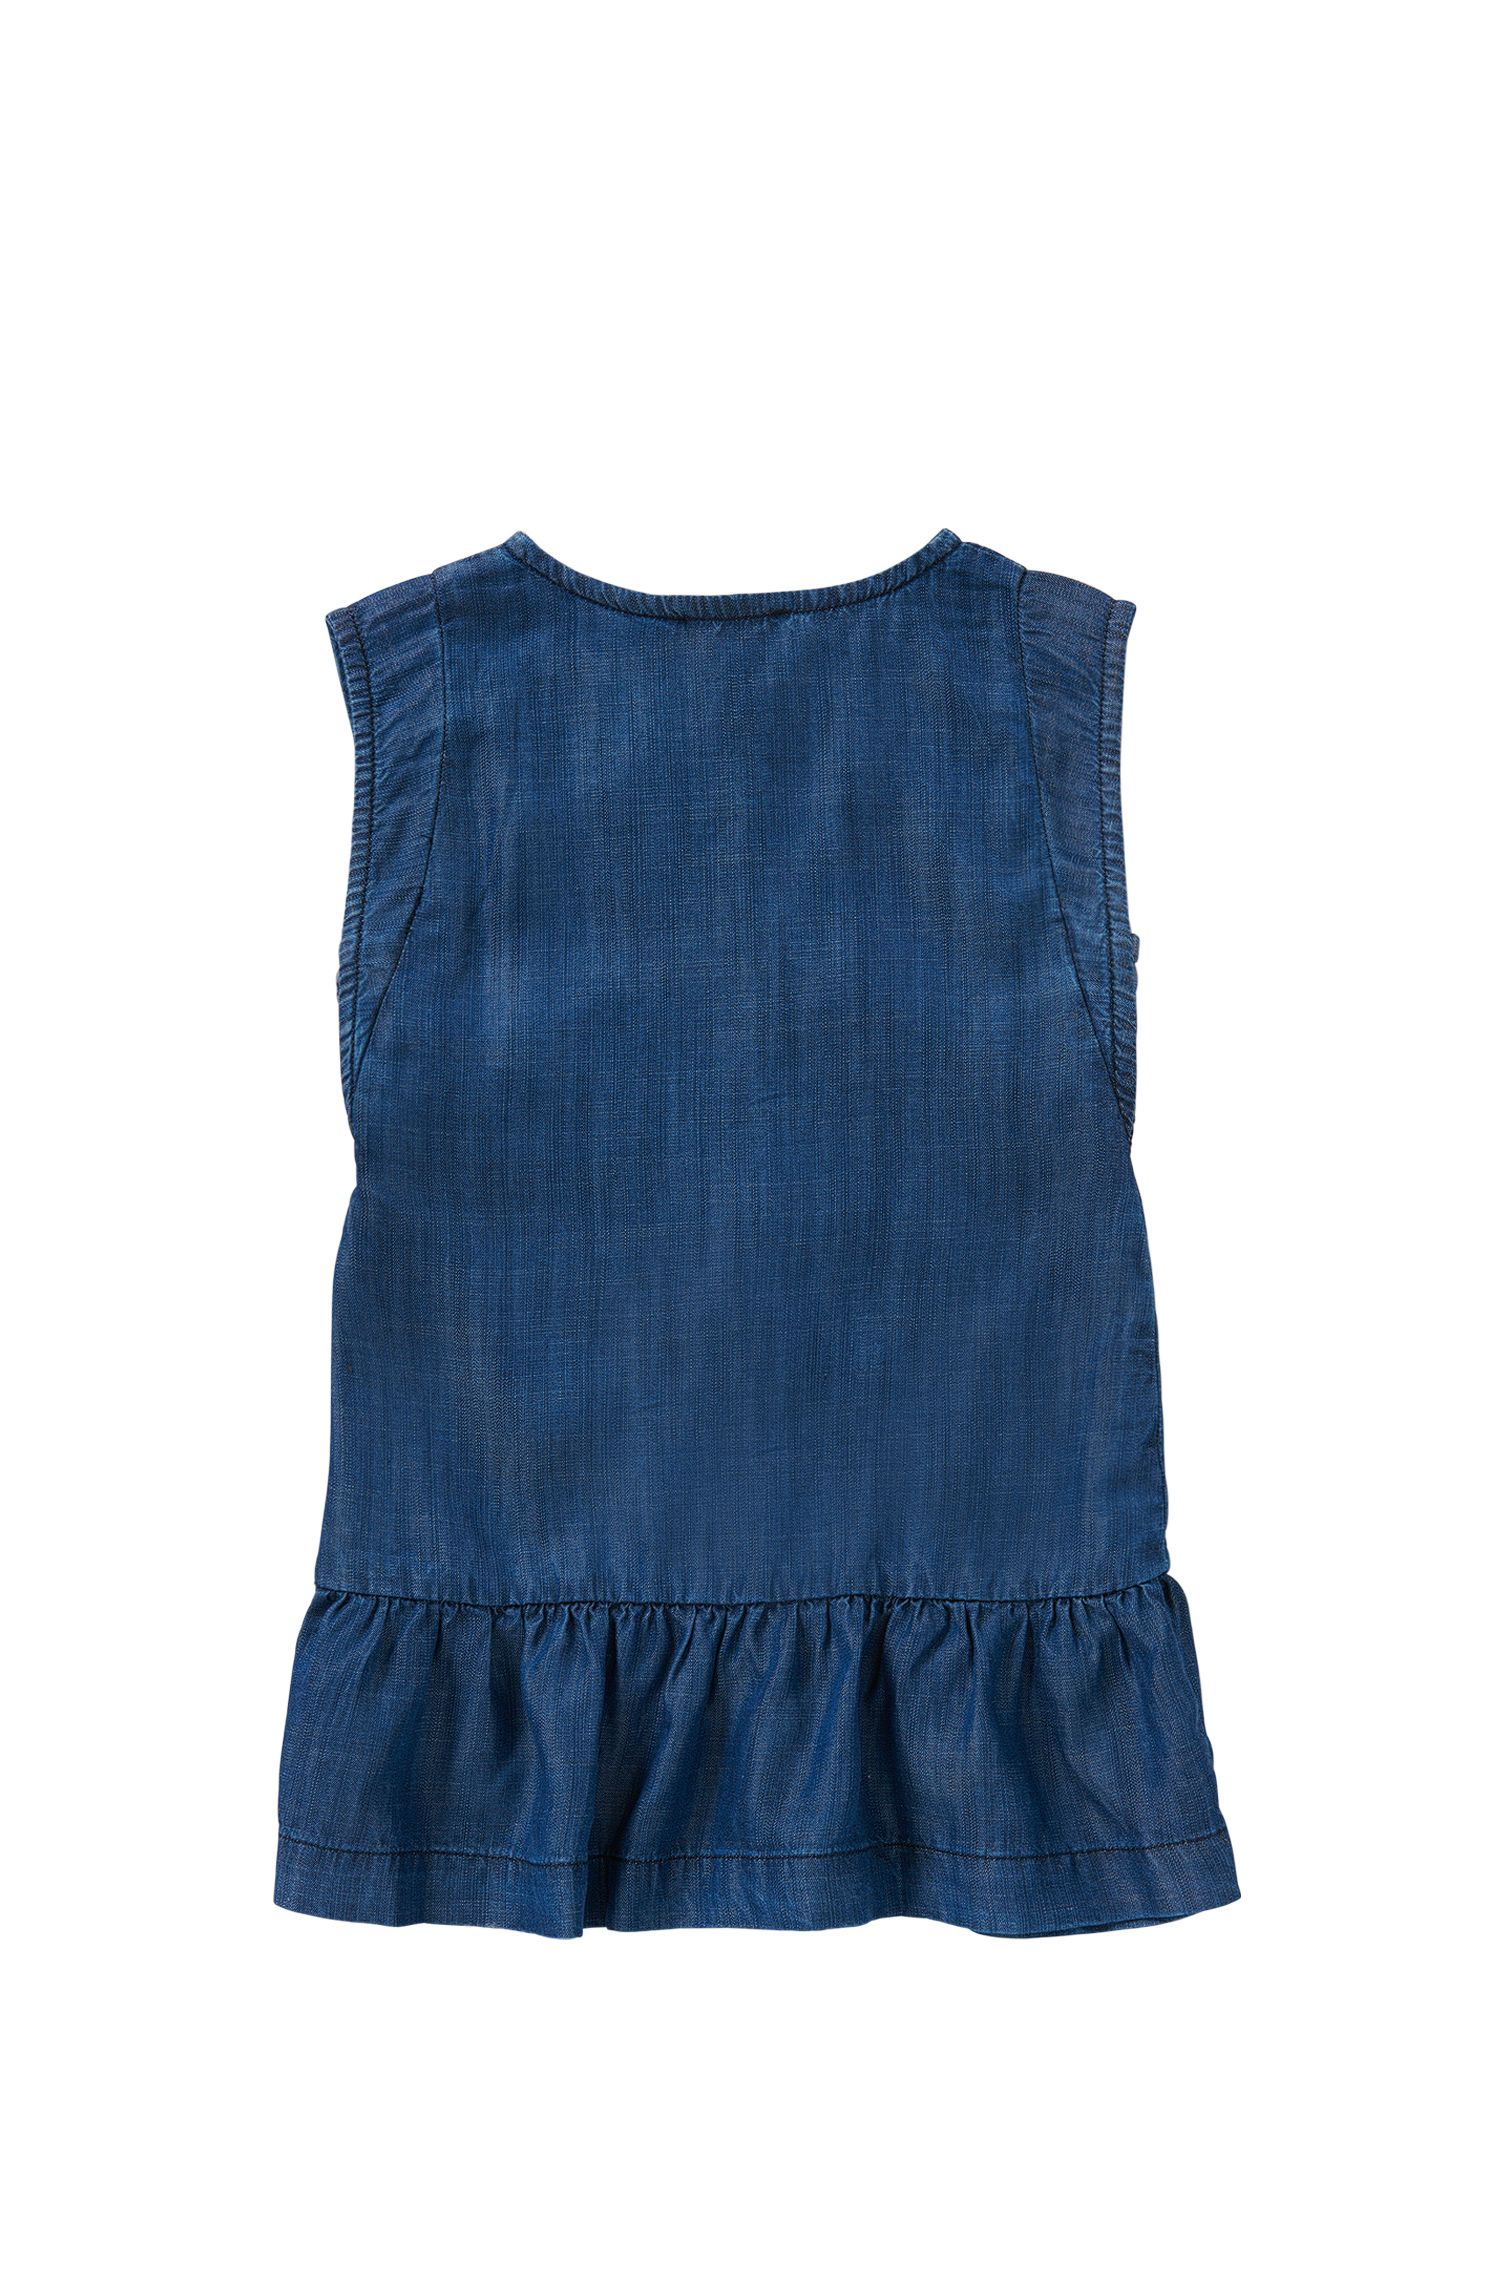 Kids-Kleid im Denim-Look : 'J12149'